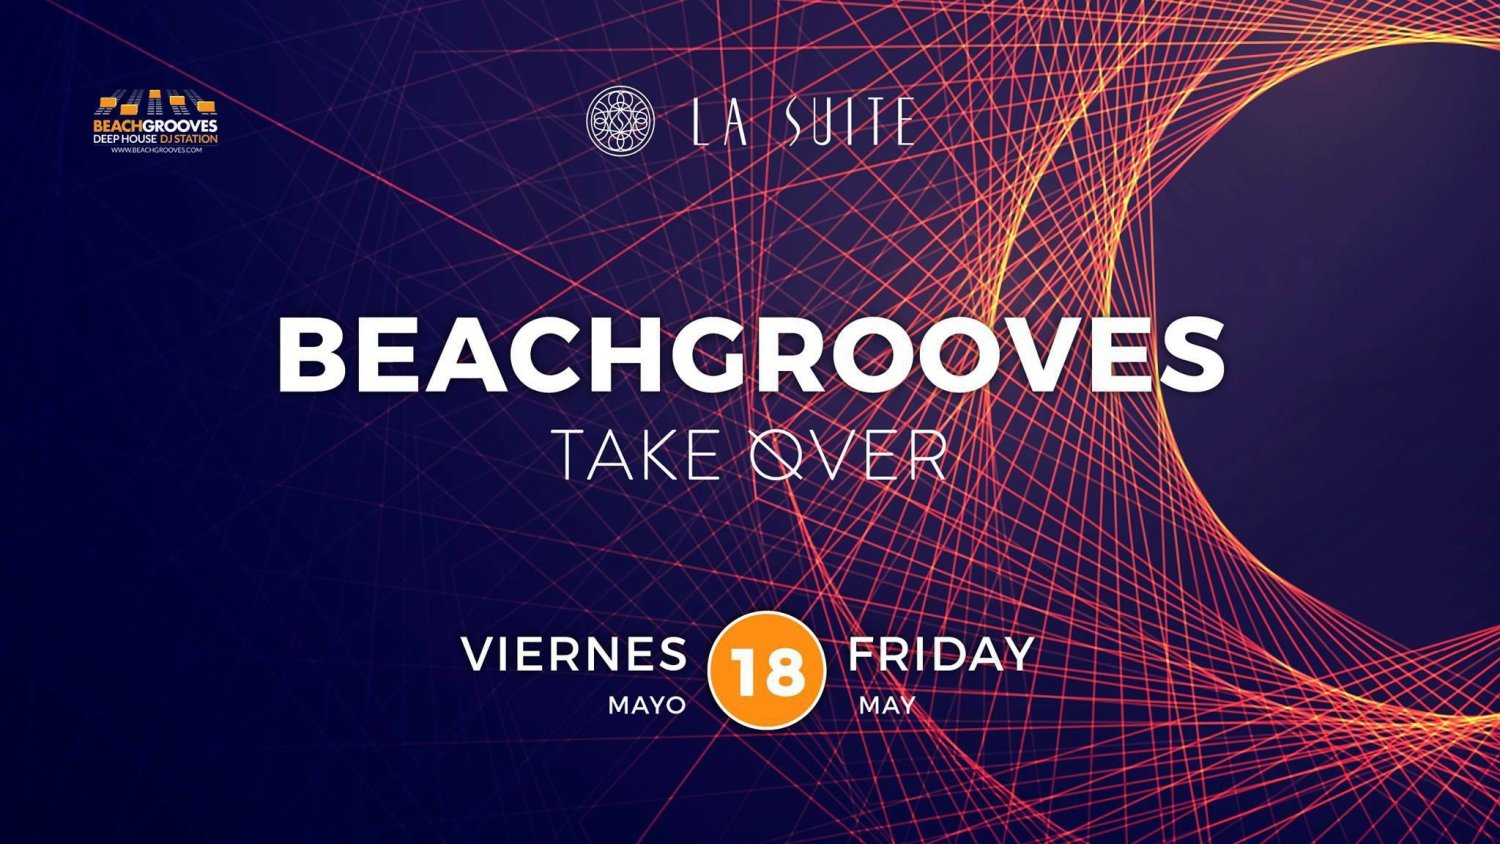 Beachgrooves Takeover - La Suite